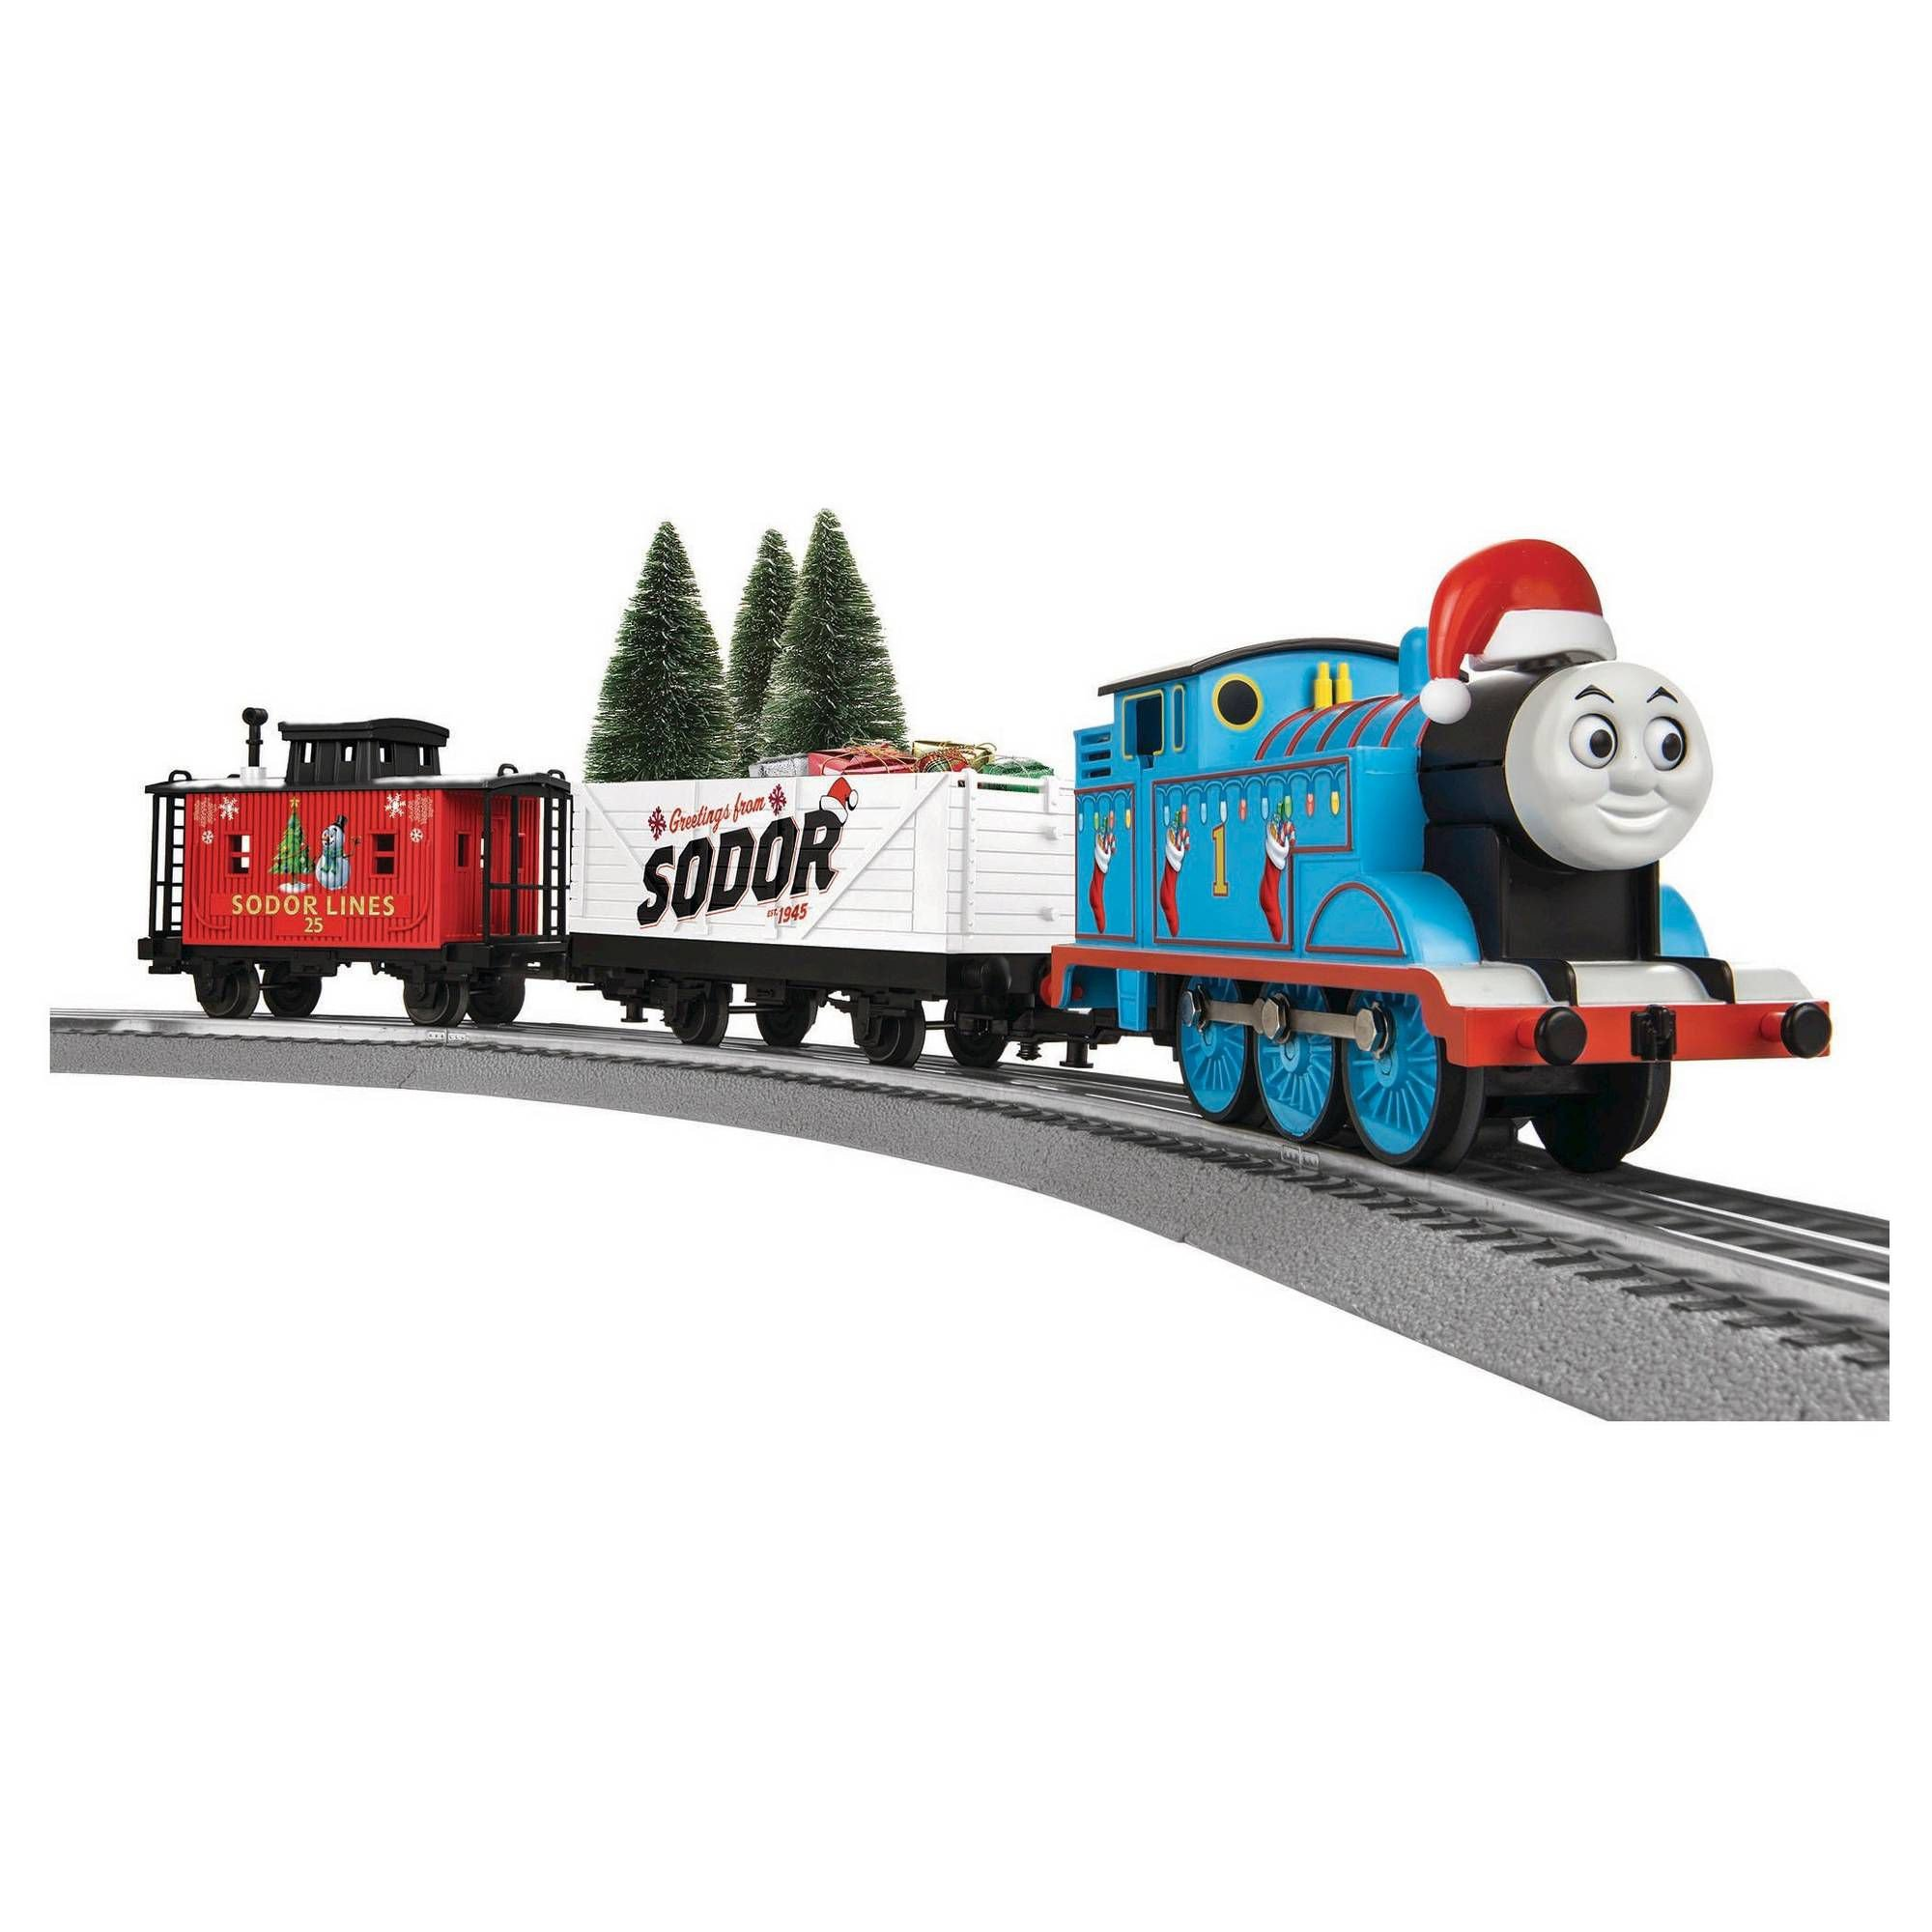 Thomas the Train Bedroom Decor Awesome the 7 Best Train Sets for Kids In 2020